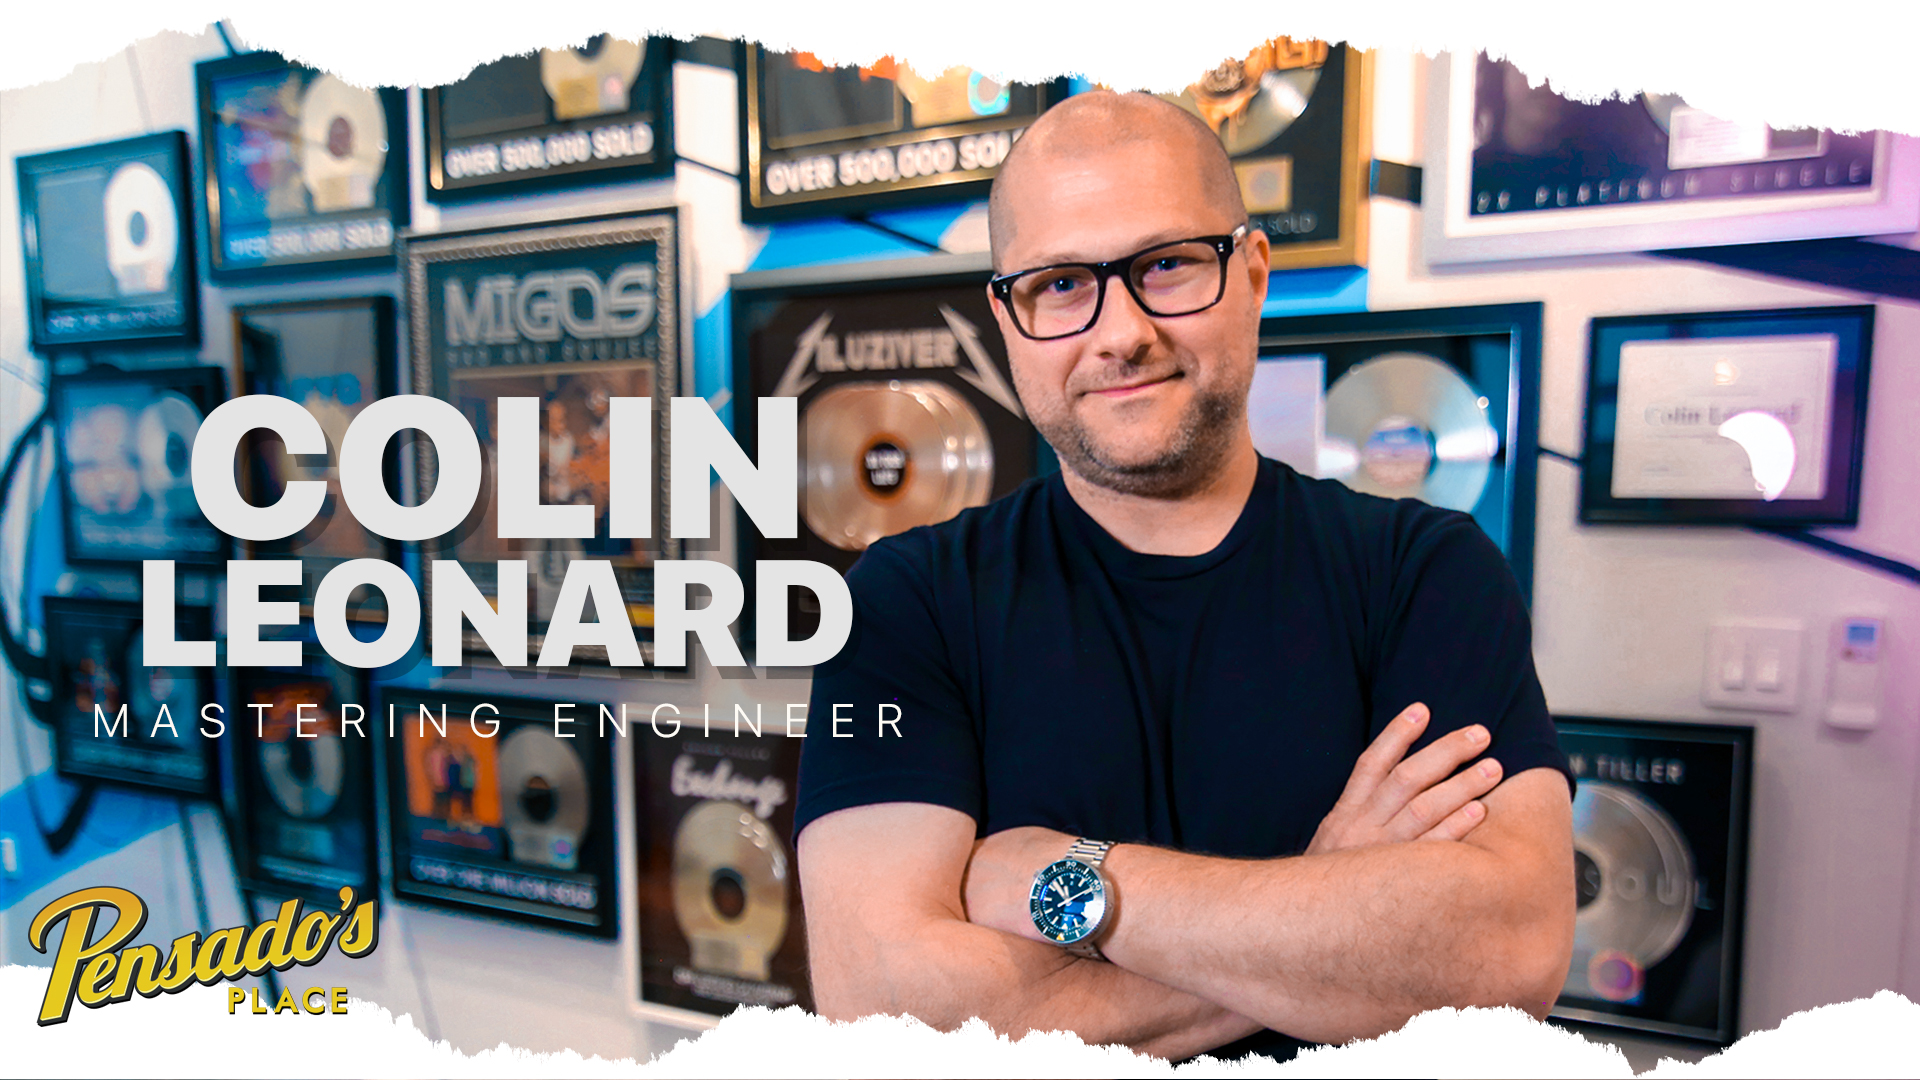 Chart Topping Mastering Engineer (SING Mastering), Colin Leonard